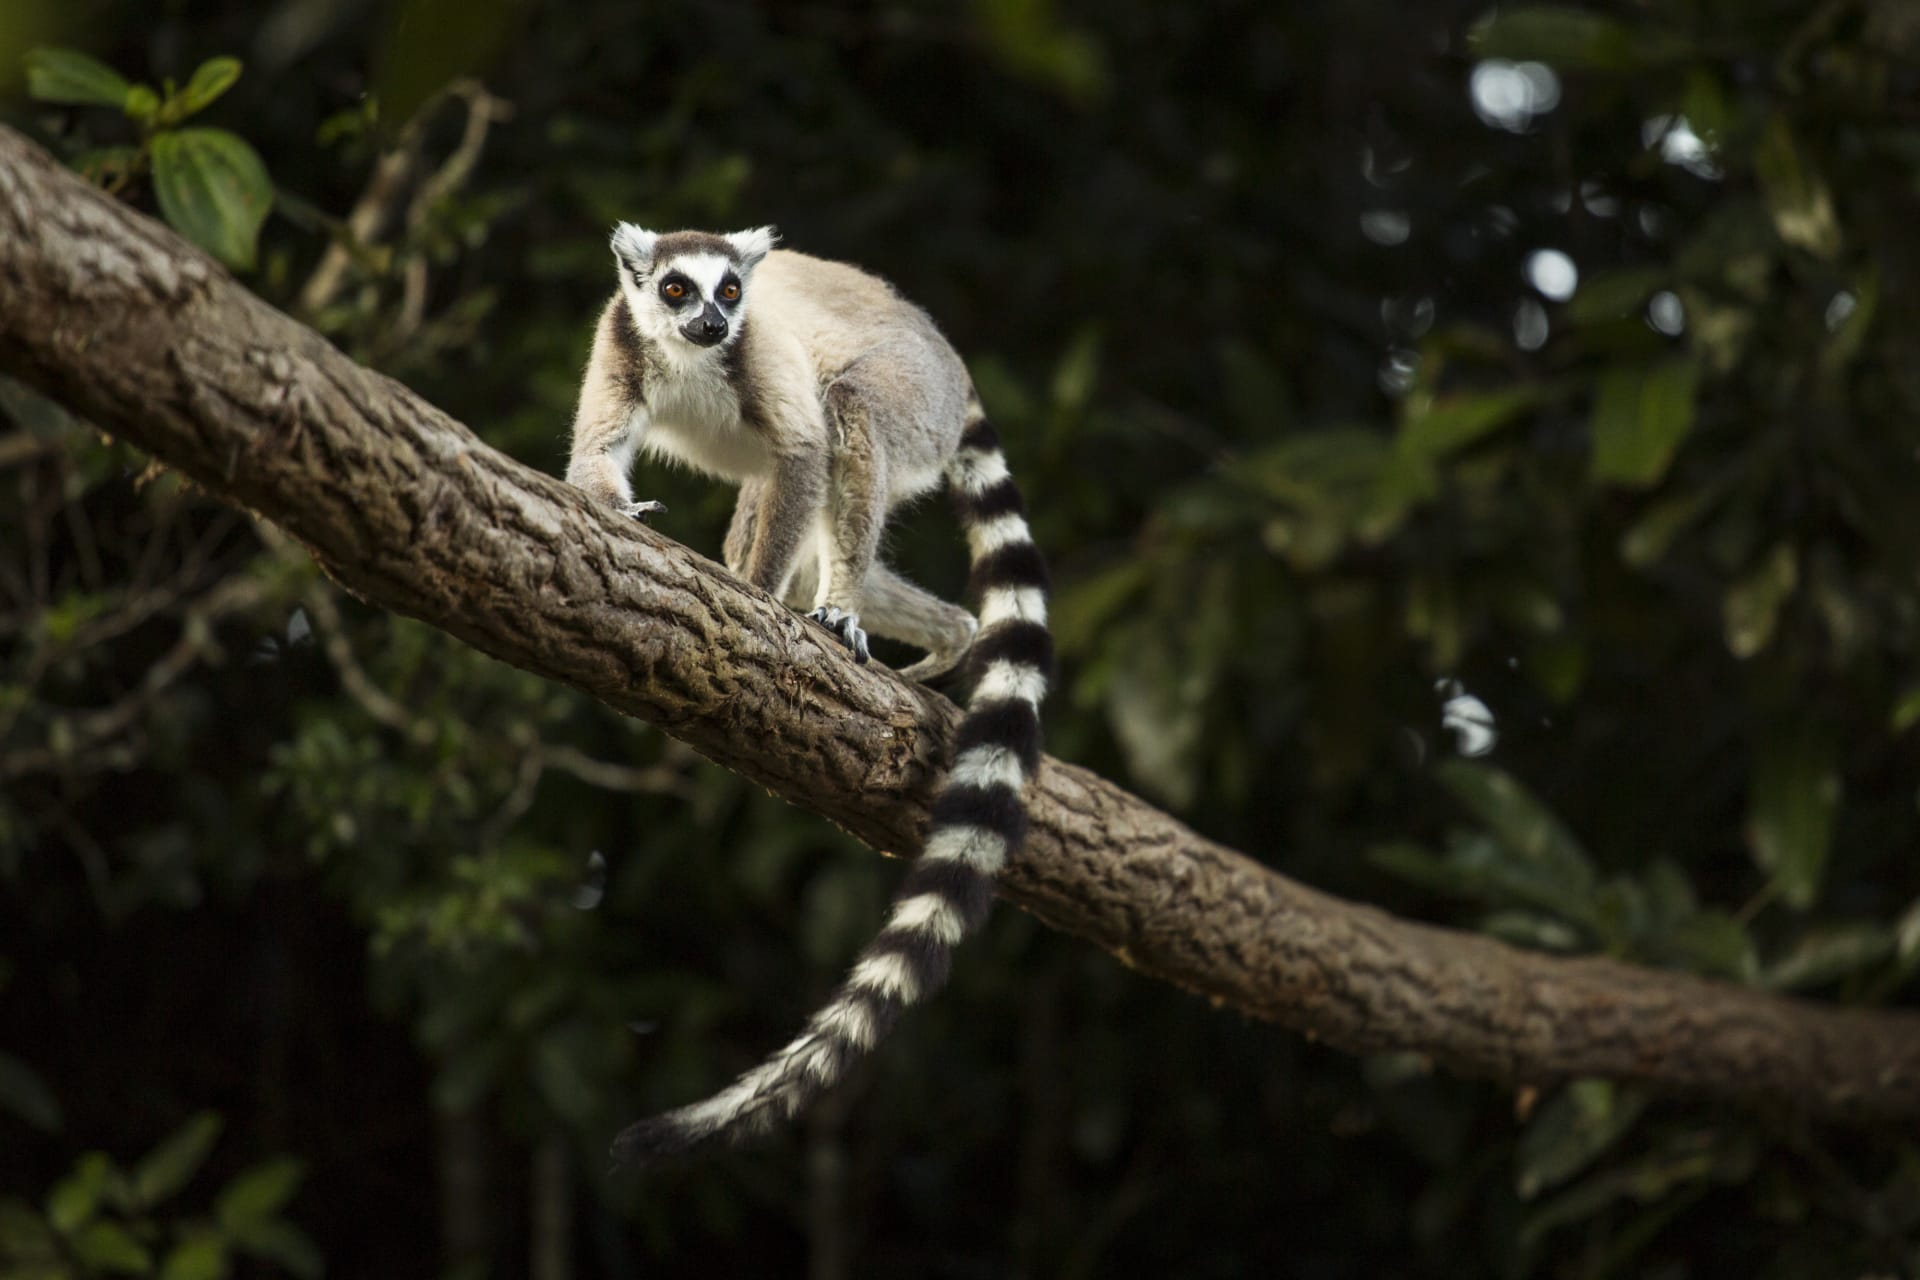 Mantasoa - Walking Tour with King Julian (the Ring-tailed Lemur) and Friends